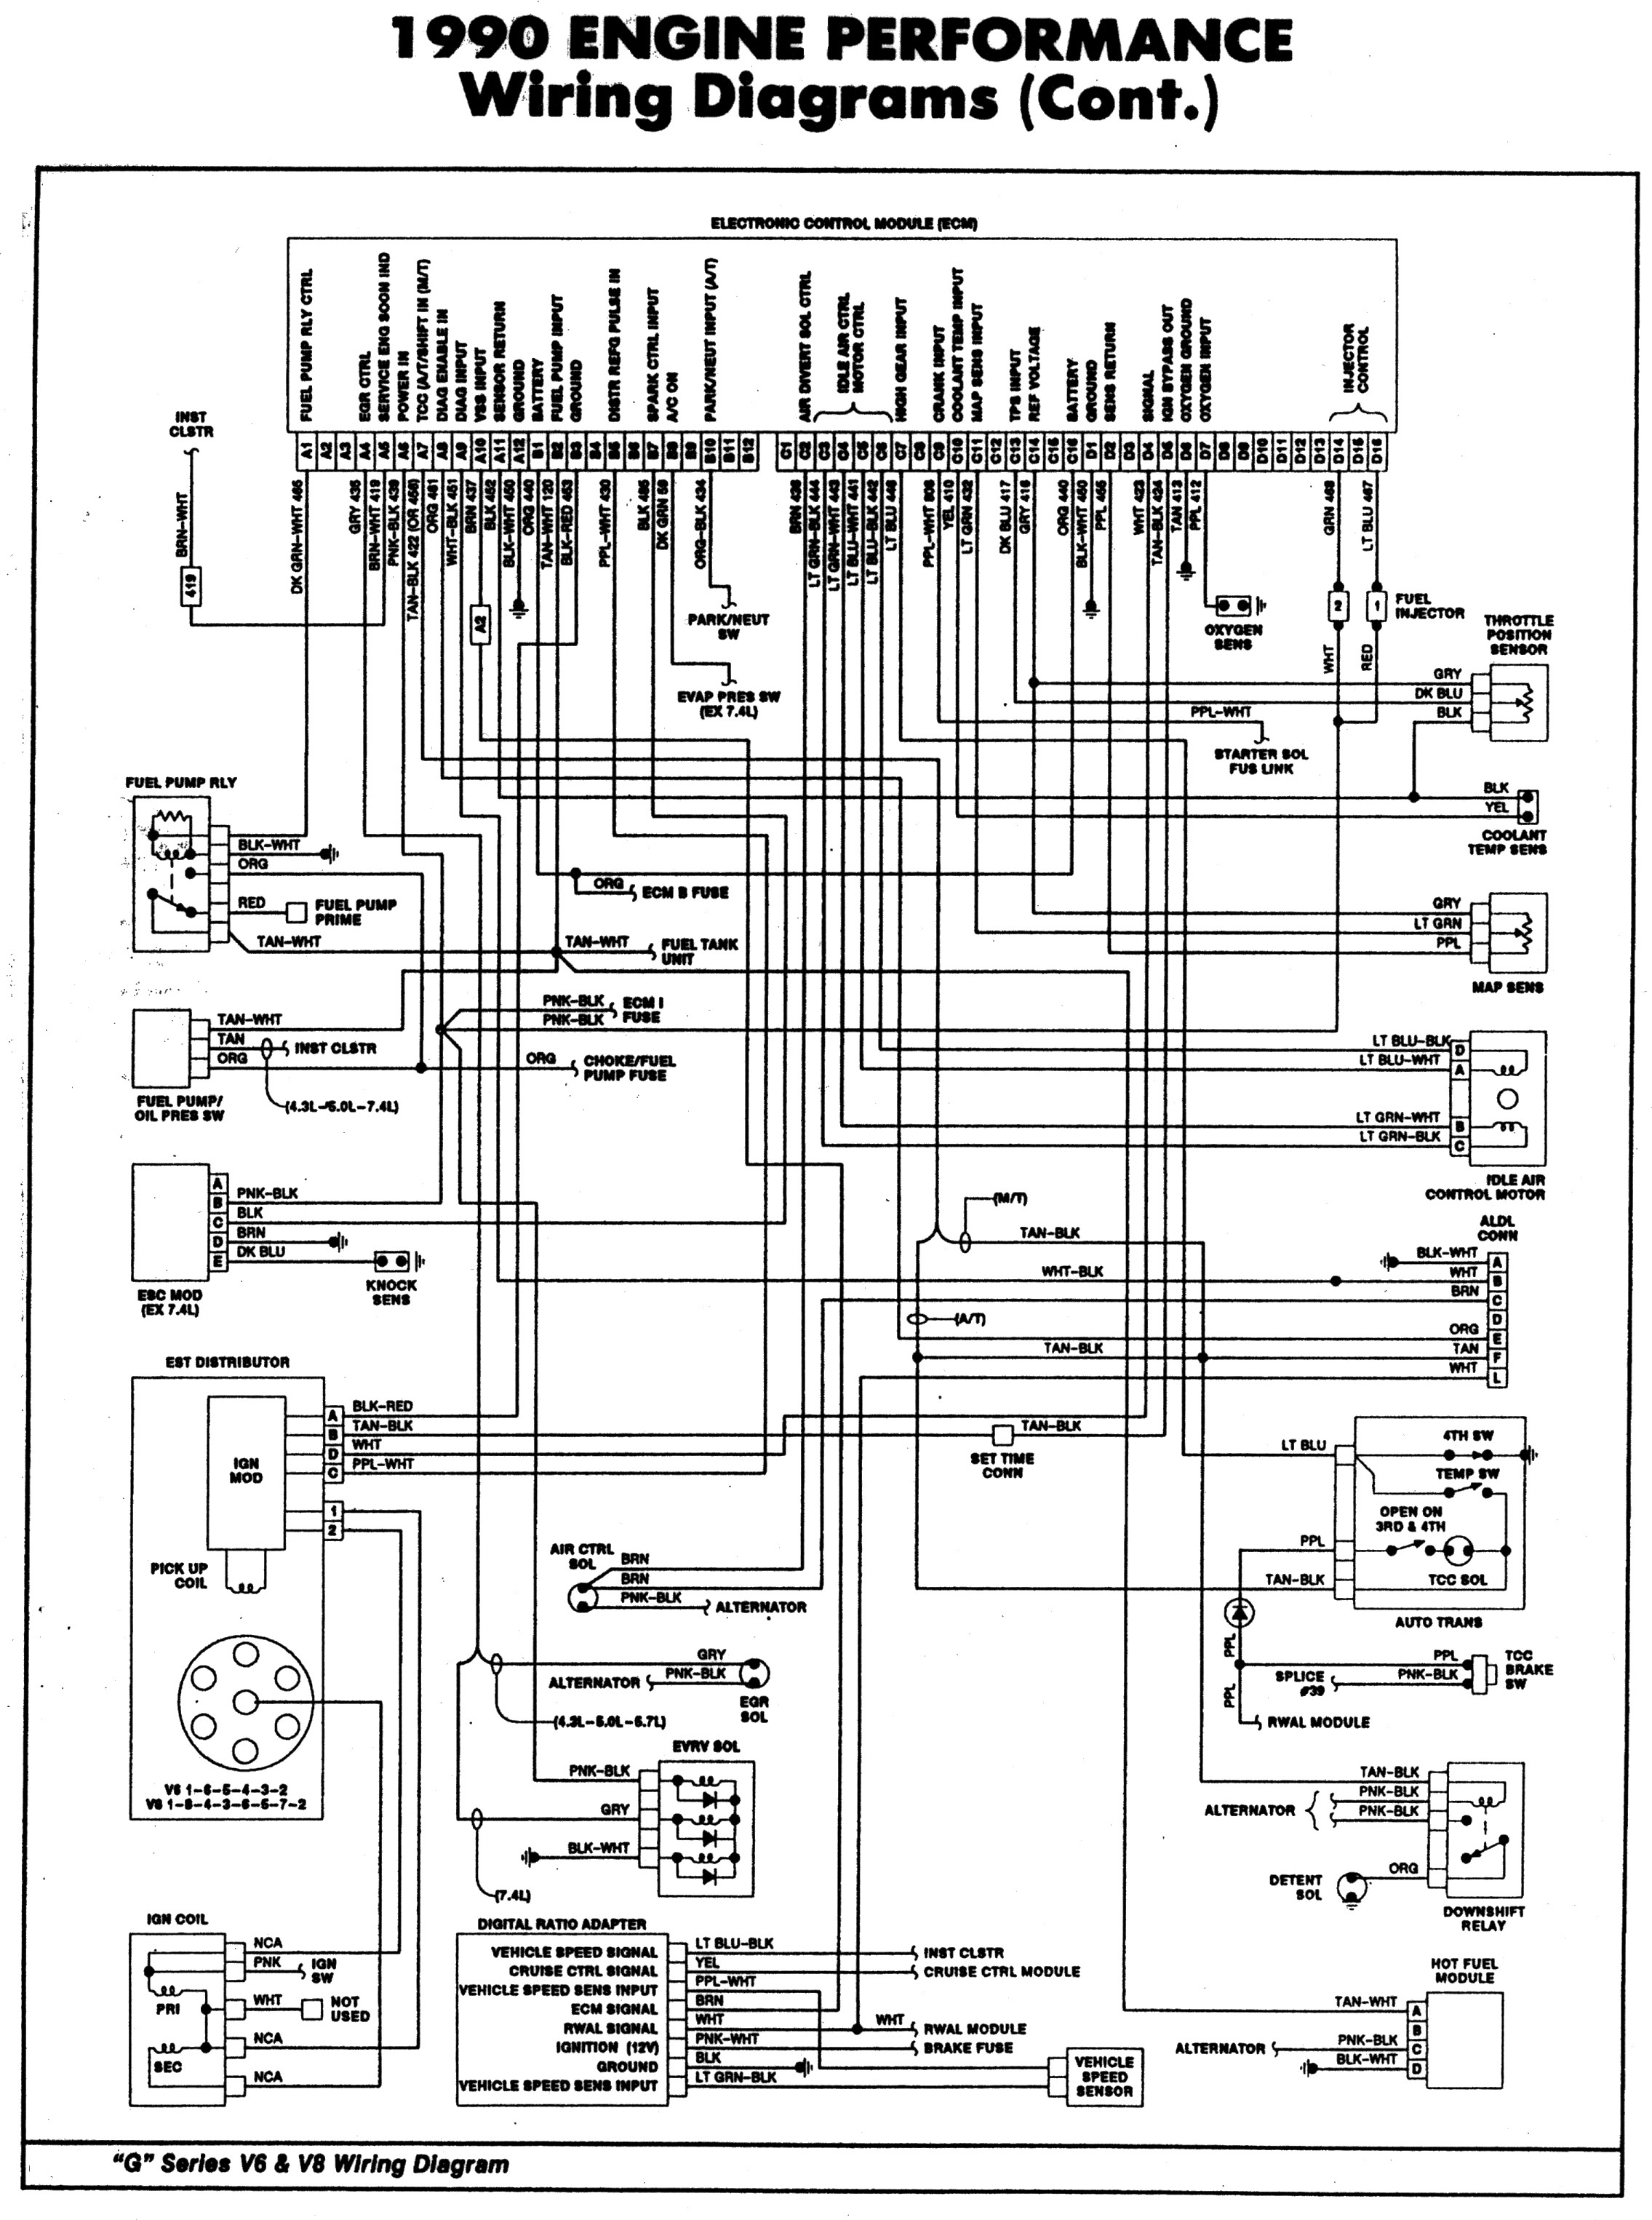 dodge ram 1500 wiring diagram free free wiring diagram 01 dodge ram 1500 wiring diagram 01 dodge ram wiring diagram free picture #14